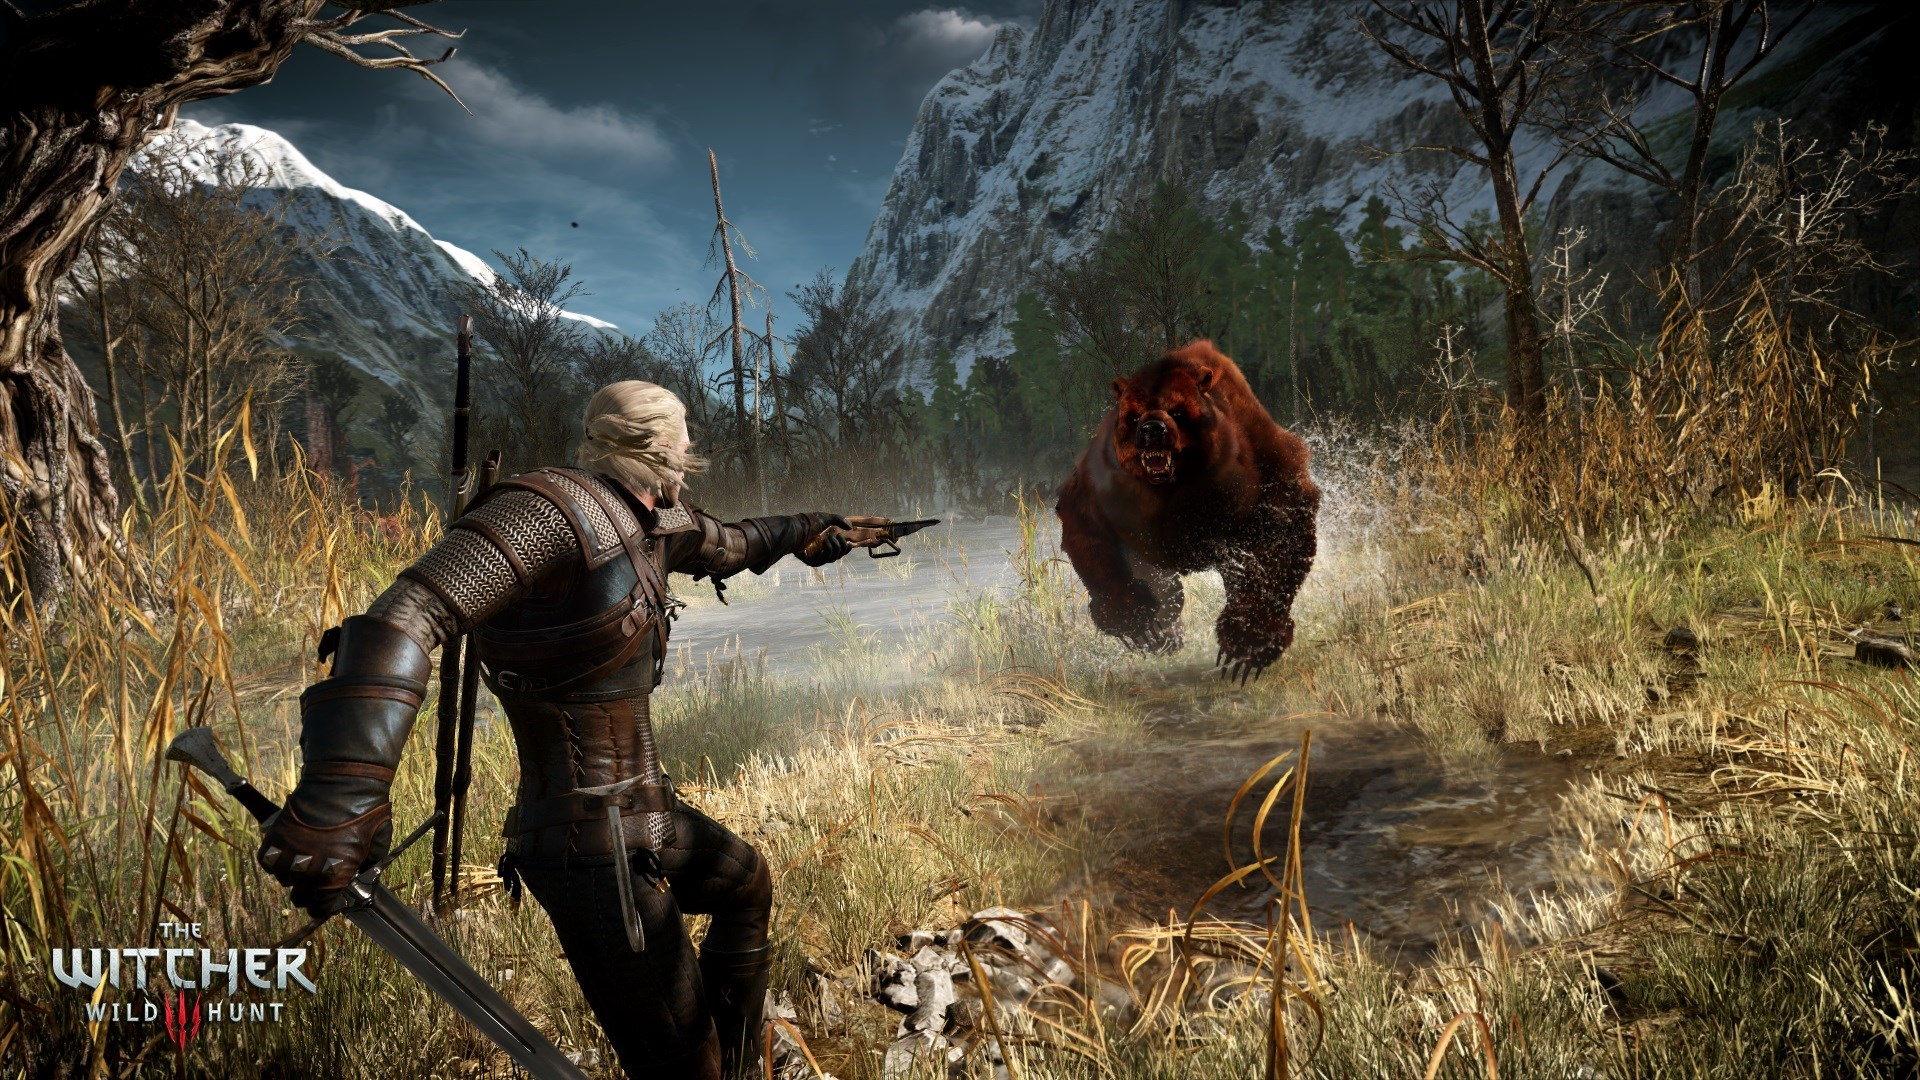 The_Witcher_3_Wild_Hunt_Geralt_shooting_his_crossbow.jpg